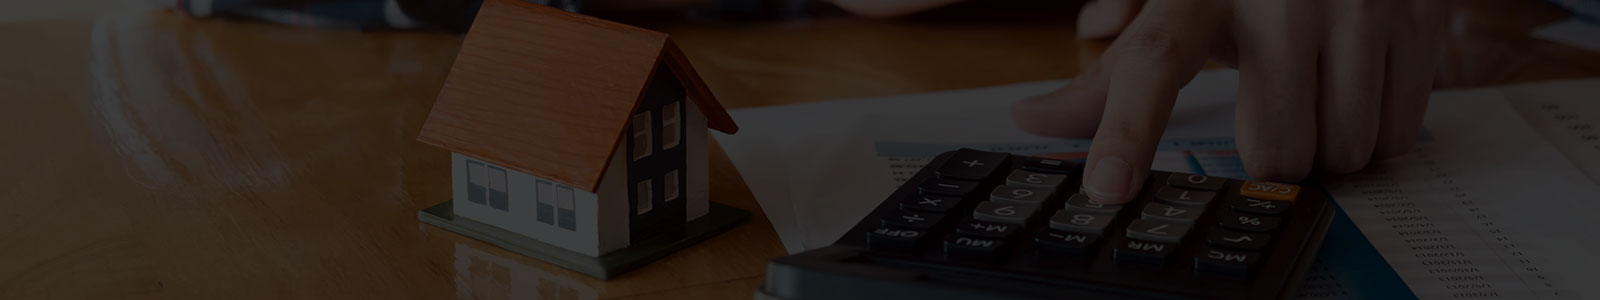 Outsourcing Real Estate Bookkeeping Servcies